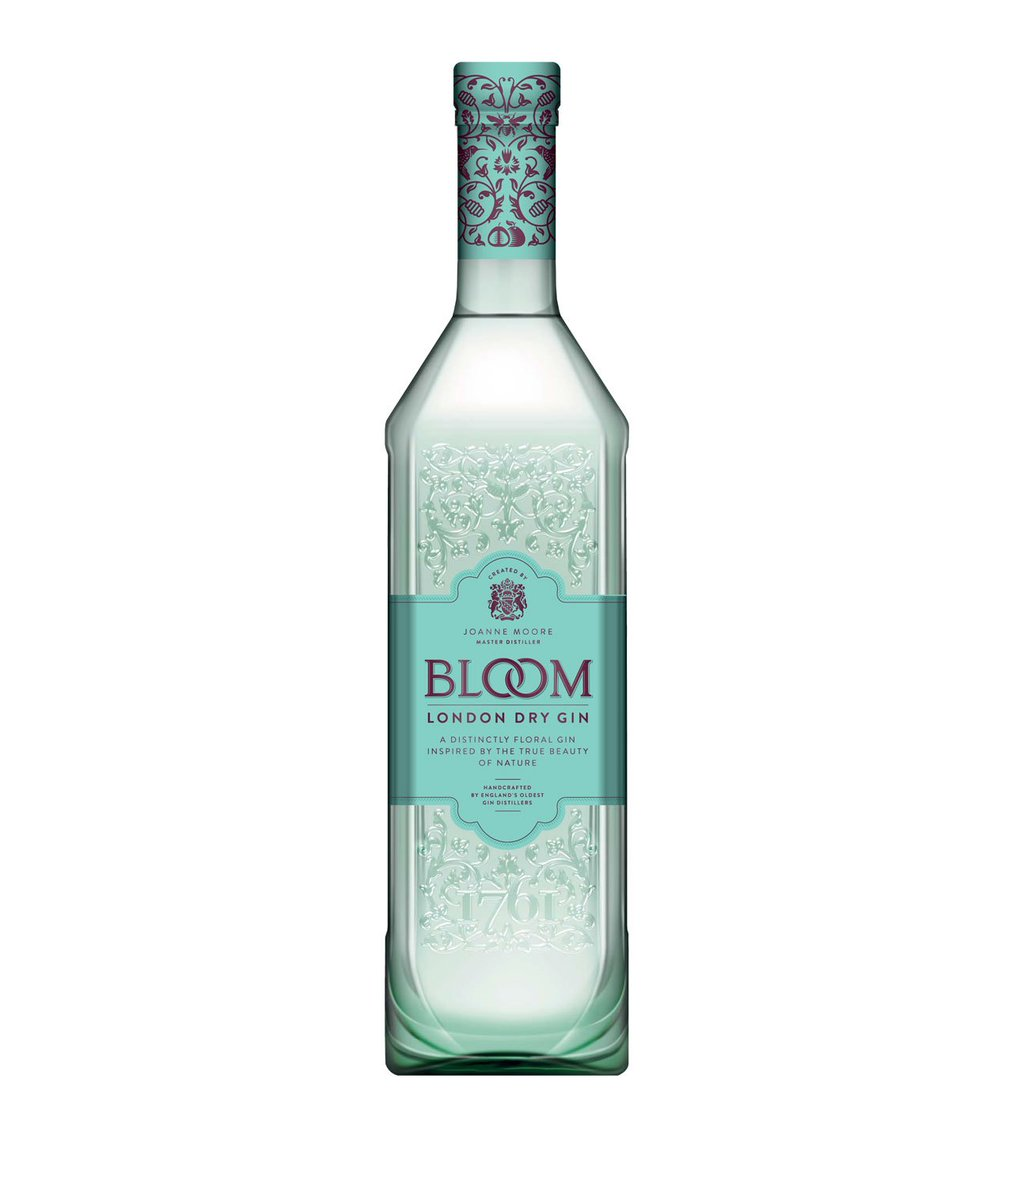 One week to go til #WorldGinDay! RT and follow to win some @BLOOMGin https://t.co/jHMBOwM6Db https://t.co/prNILvC4h5